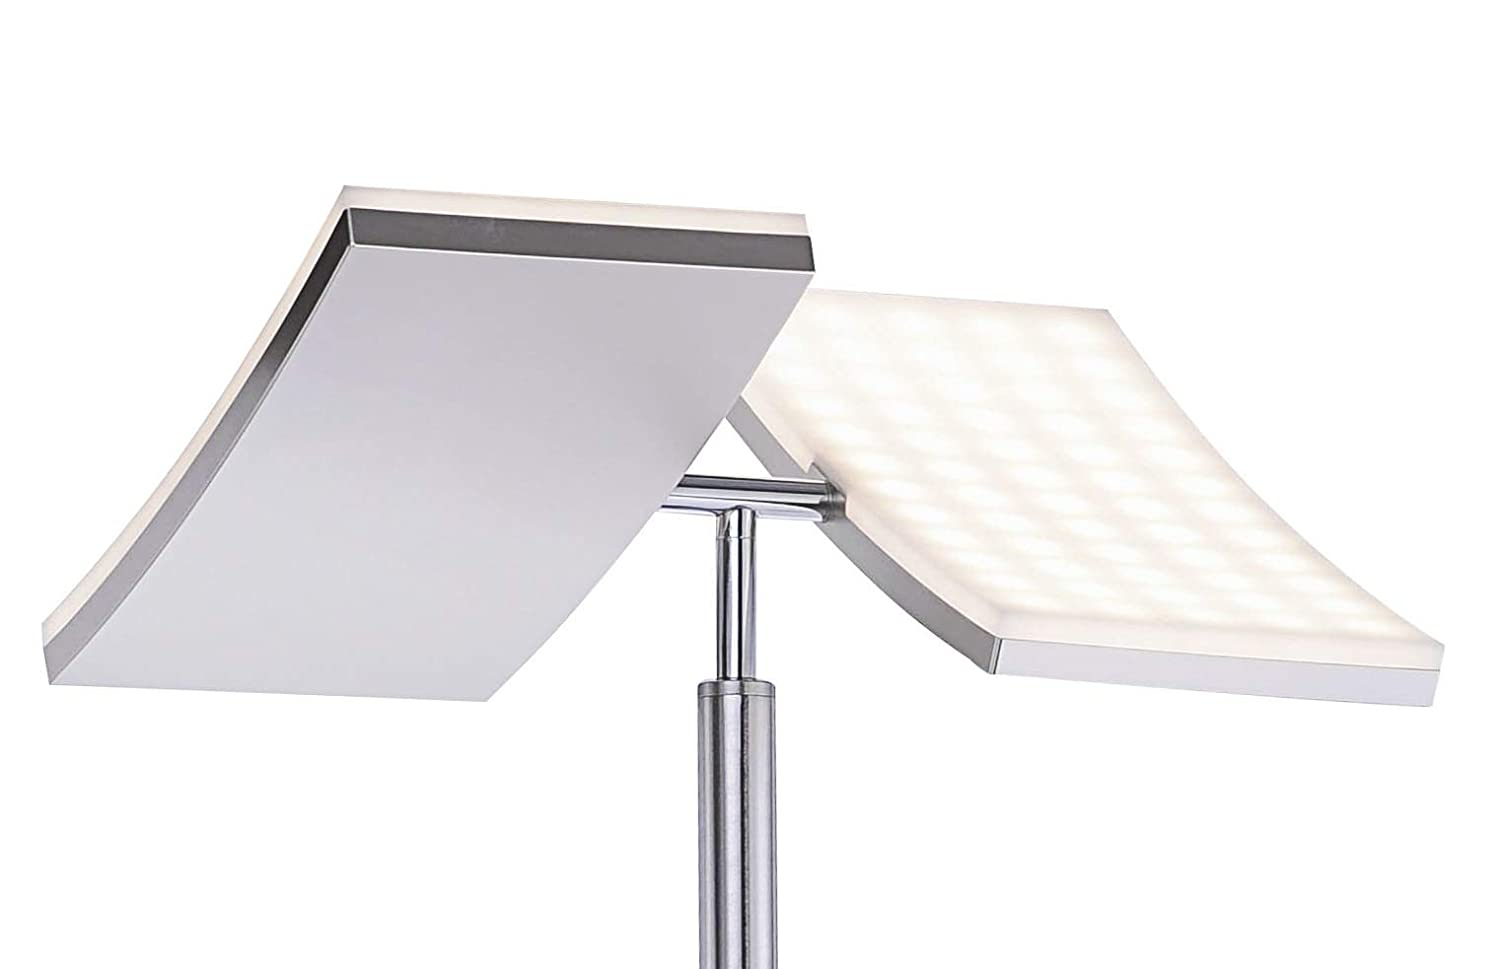 LED Stehleuchte Schwarz Dimmbar Stehlampe Touch Leselampe Deckenfluter 3 Typ